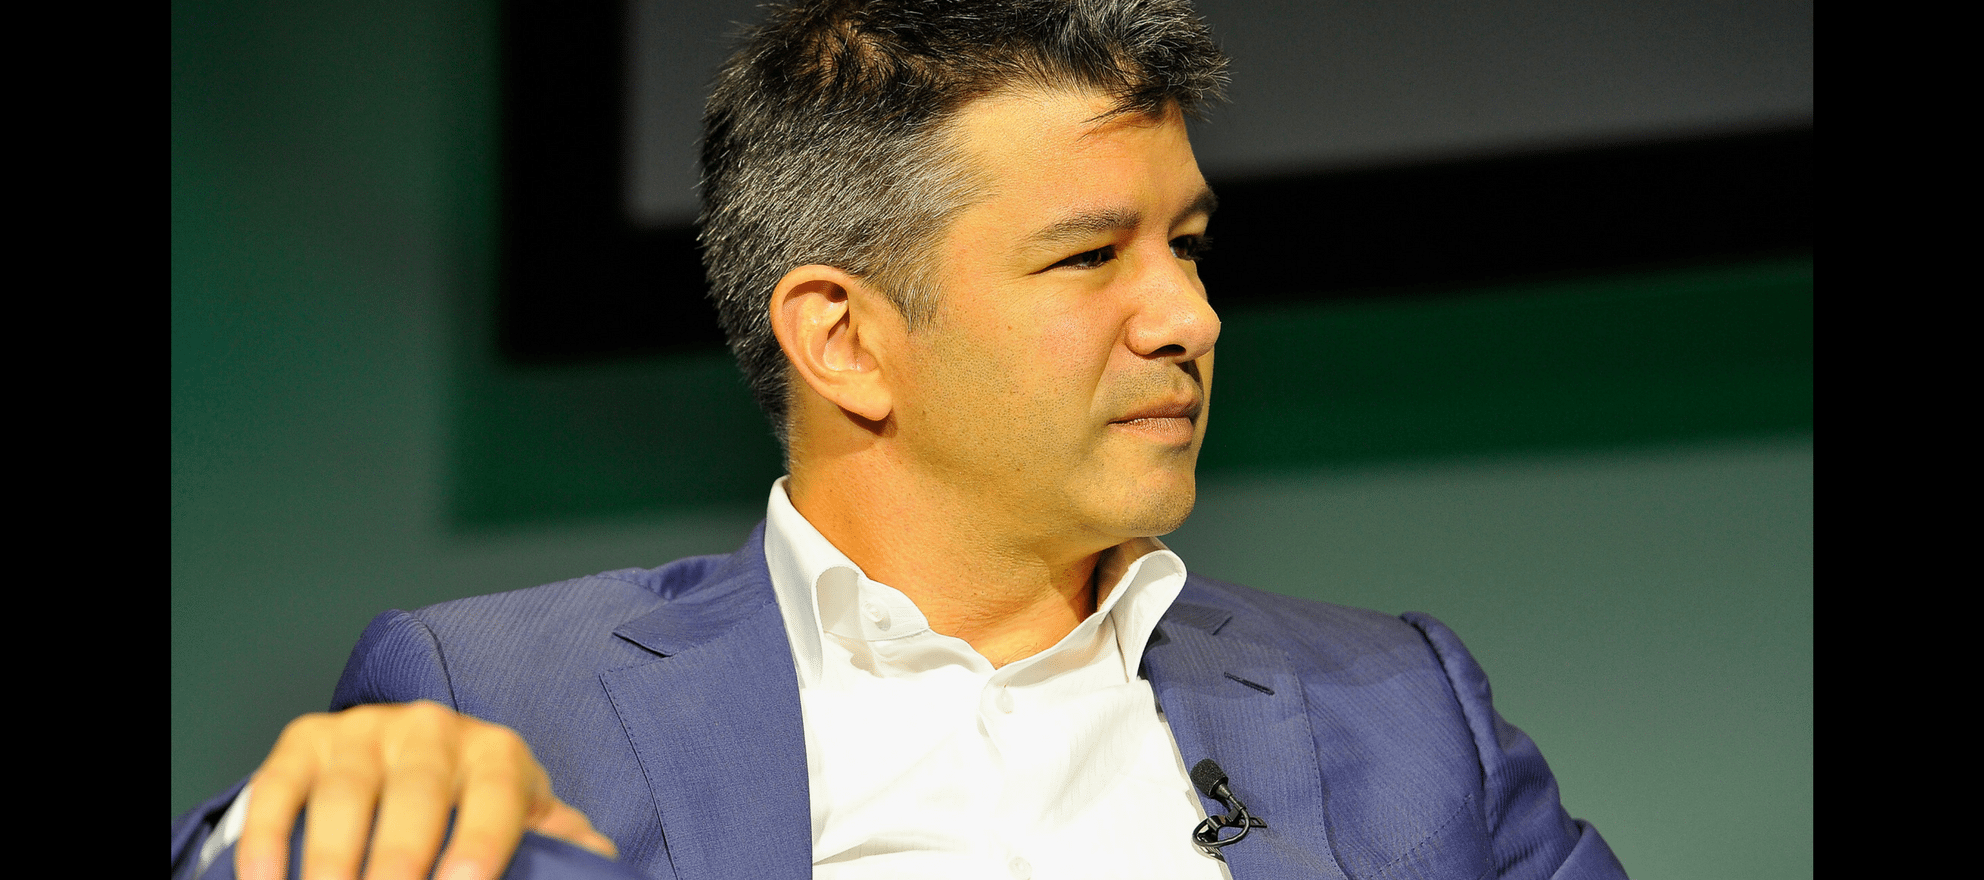 Ex-Uber CEO will invest in real estate startups through new fund